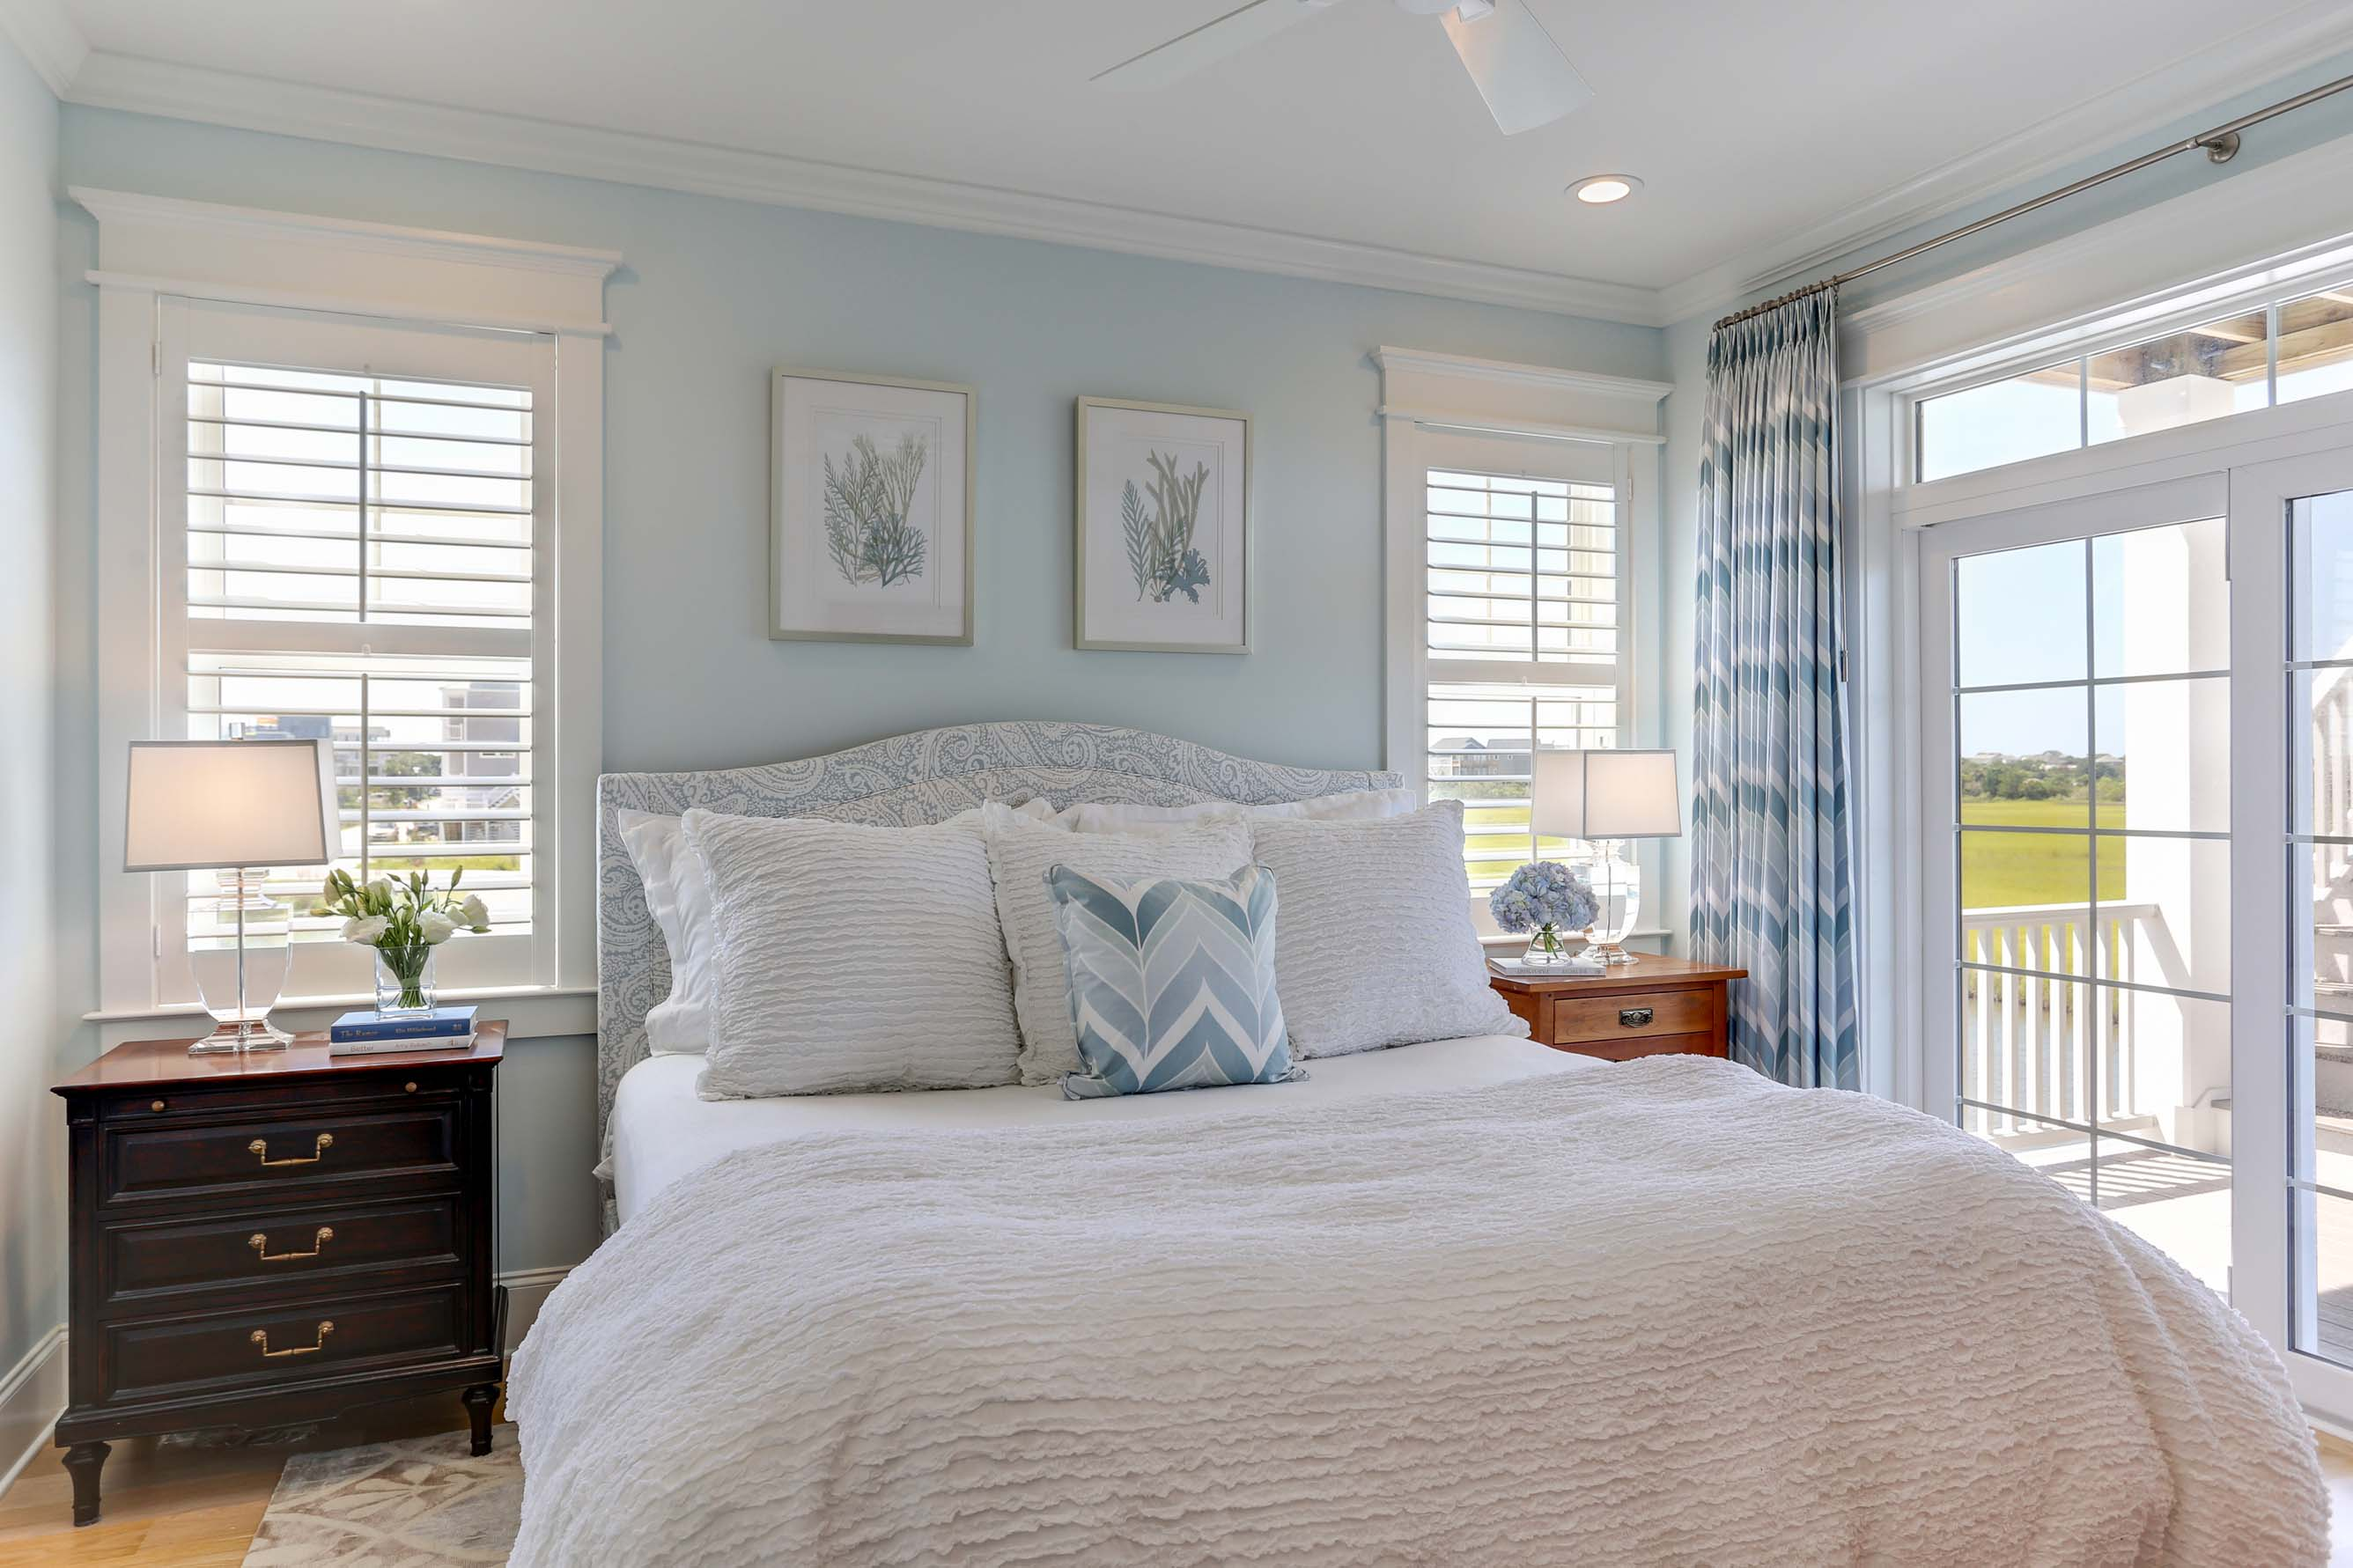 Teal interior design raleigh wilmington interior design - Interior designers in raleigh nc ...